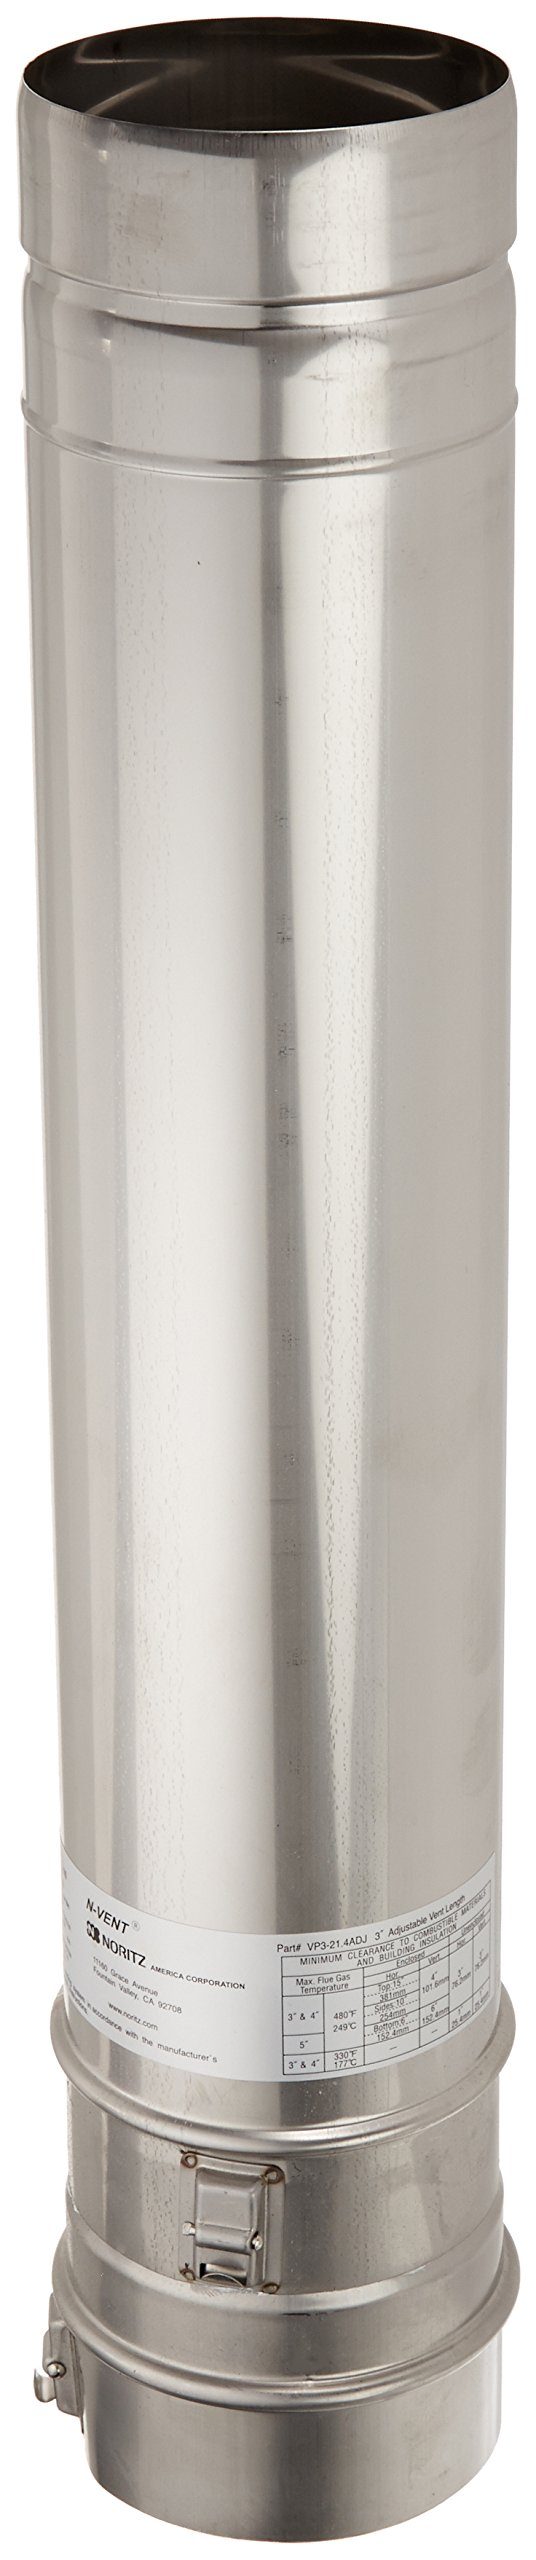 Noritz VP3-21.4ADJUST 3-Inch Diameter by 21.4-Inch Adjustable Straight Stainless Steel Single Wall Venting